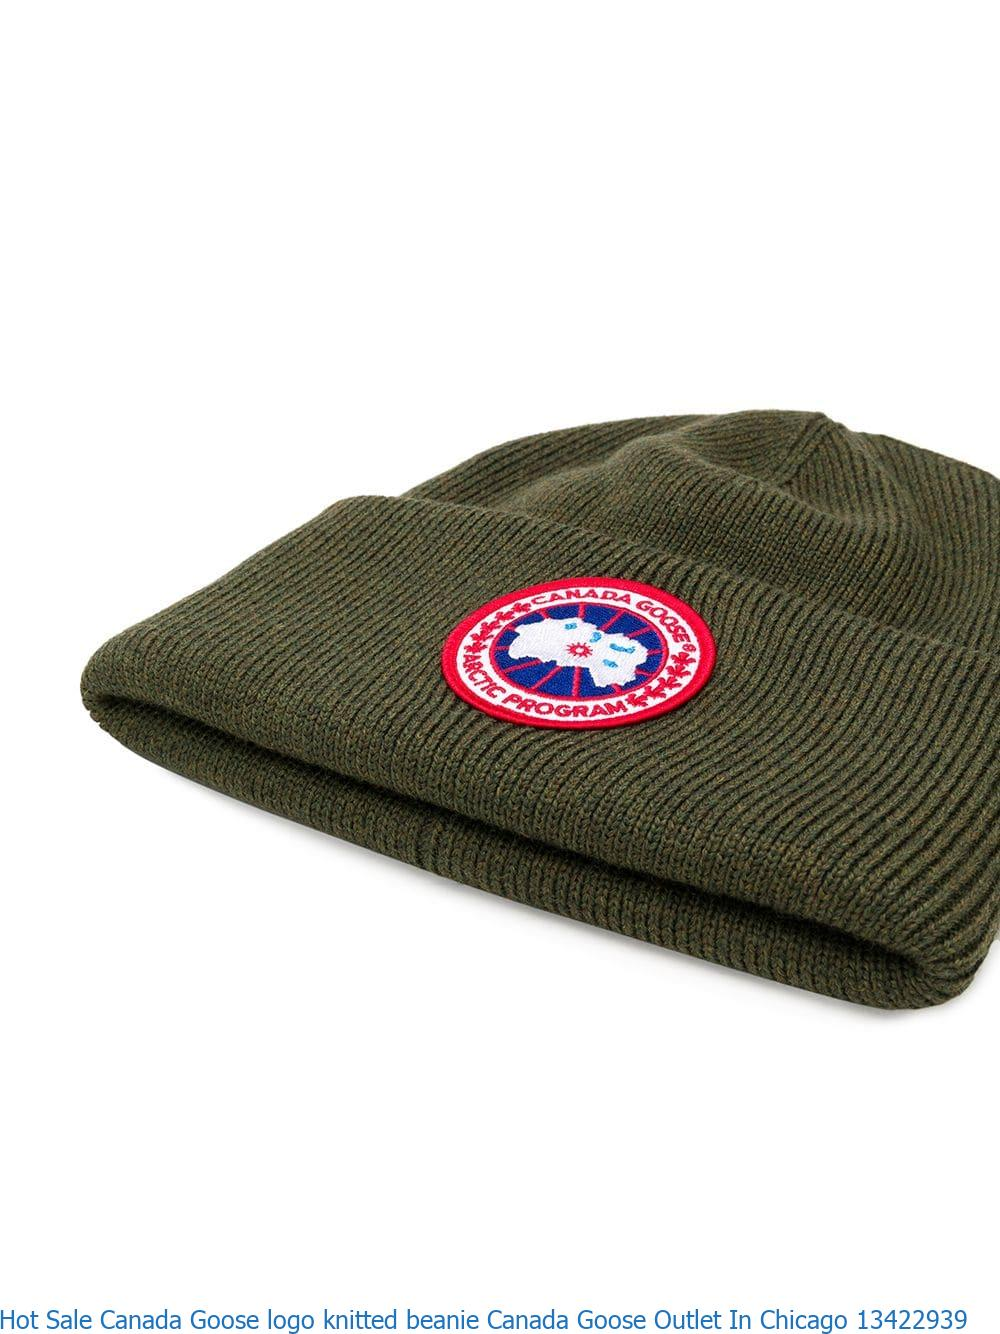 1dbb0e908 Hot Sale Canada Goose logo knitted beanie Canada Goose Outlet In Chicago  13422939